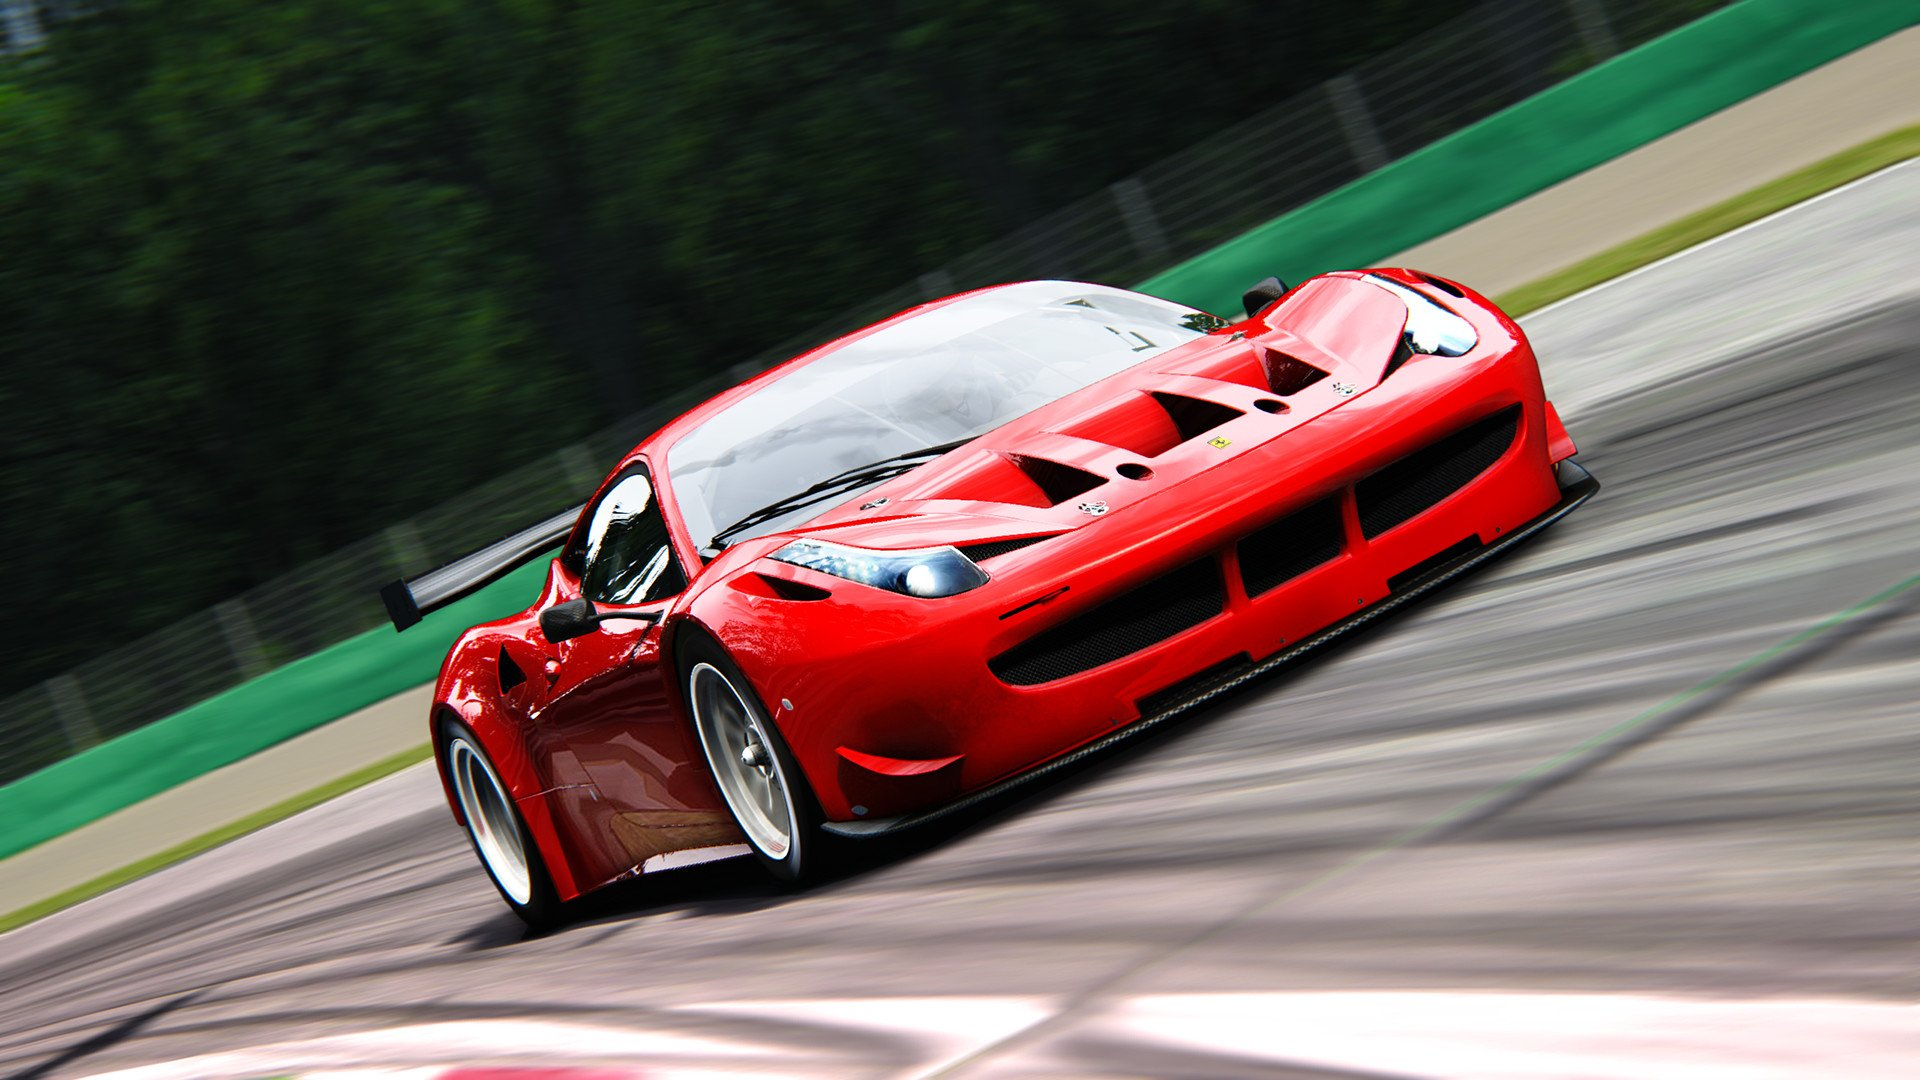 Assetto Corsa Early Access 1 0rc Impressions Inside Sim